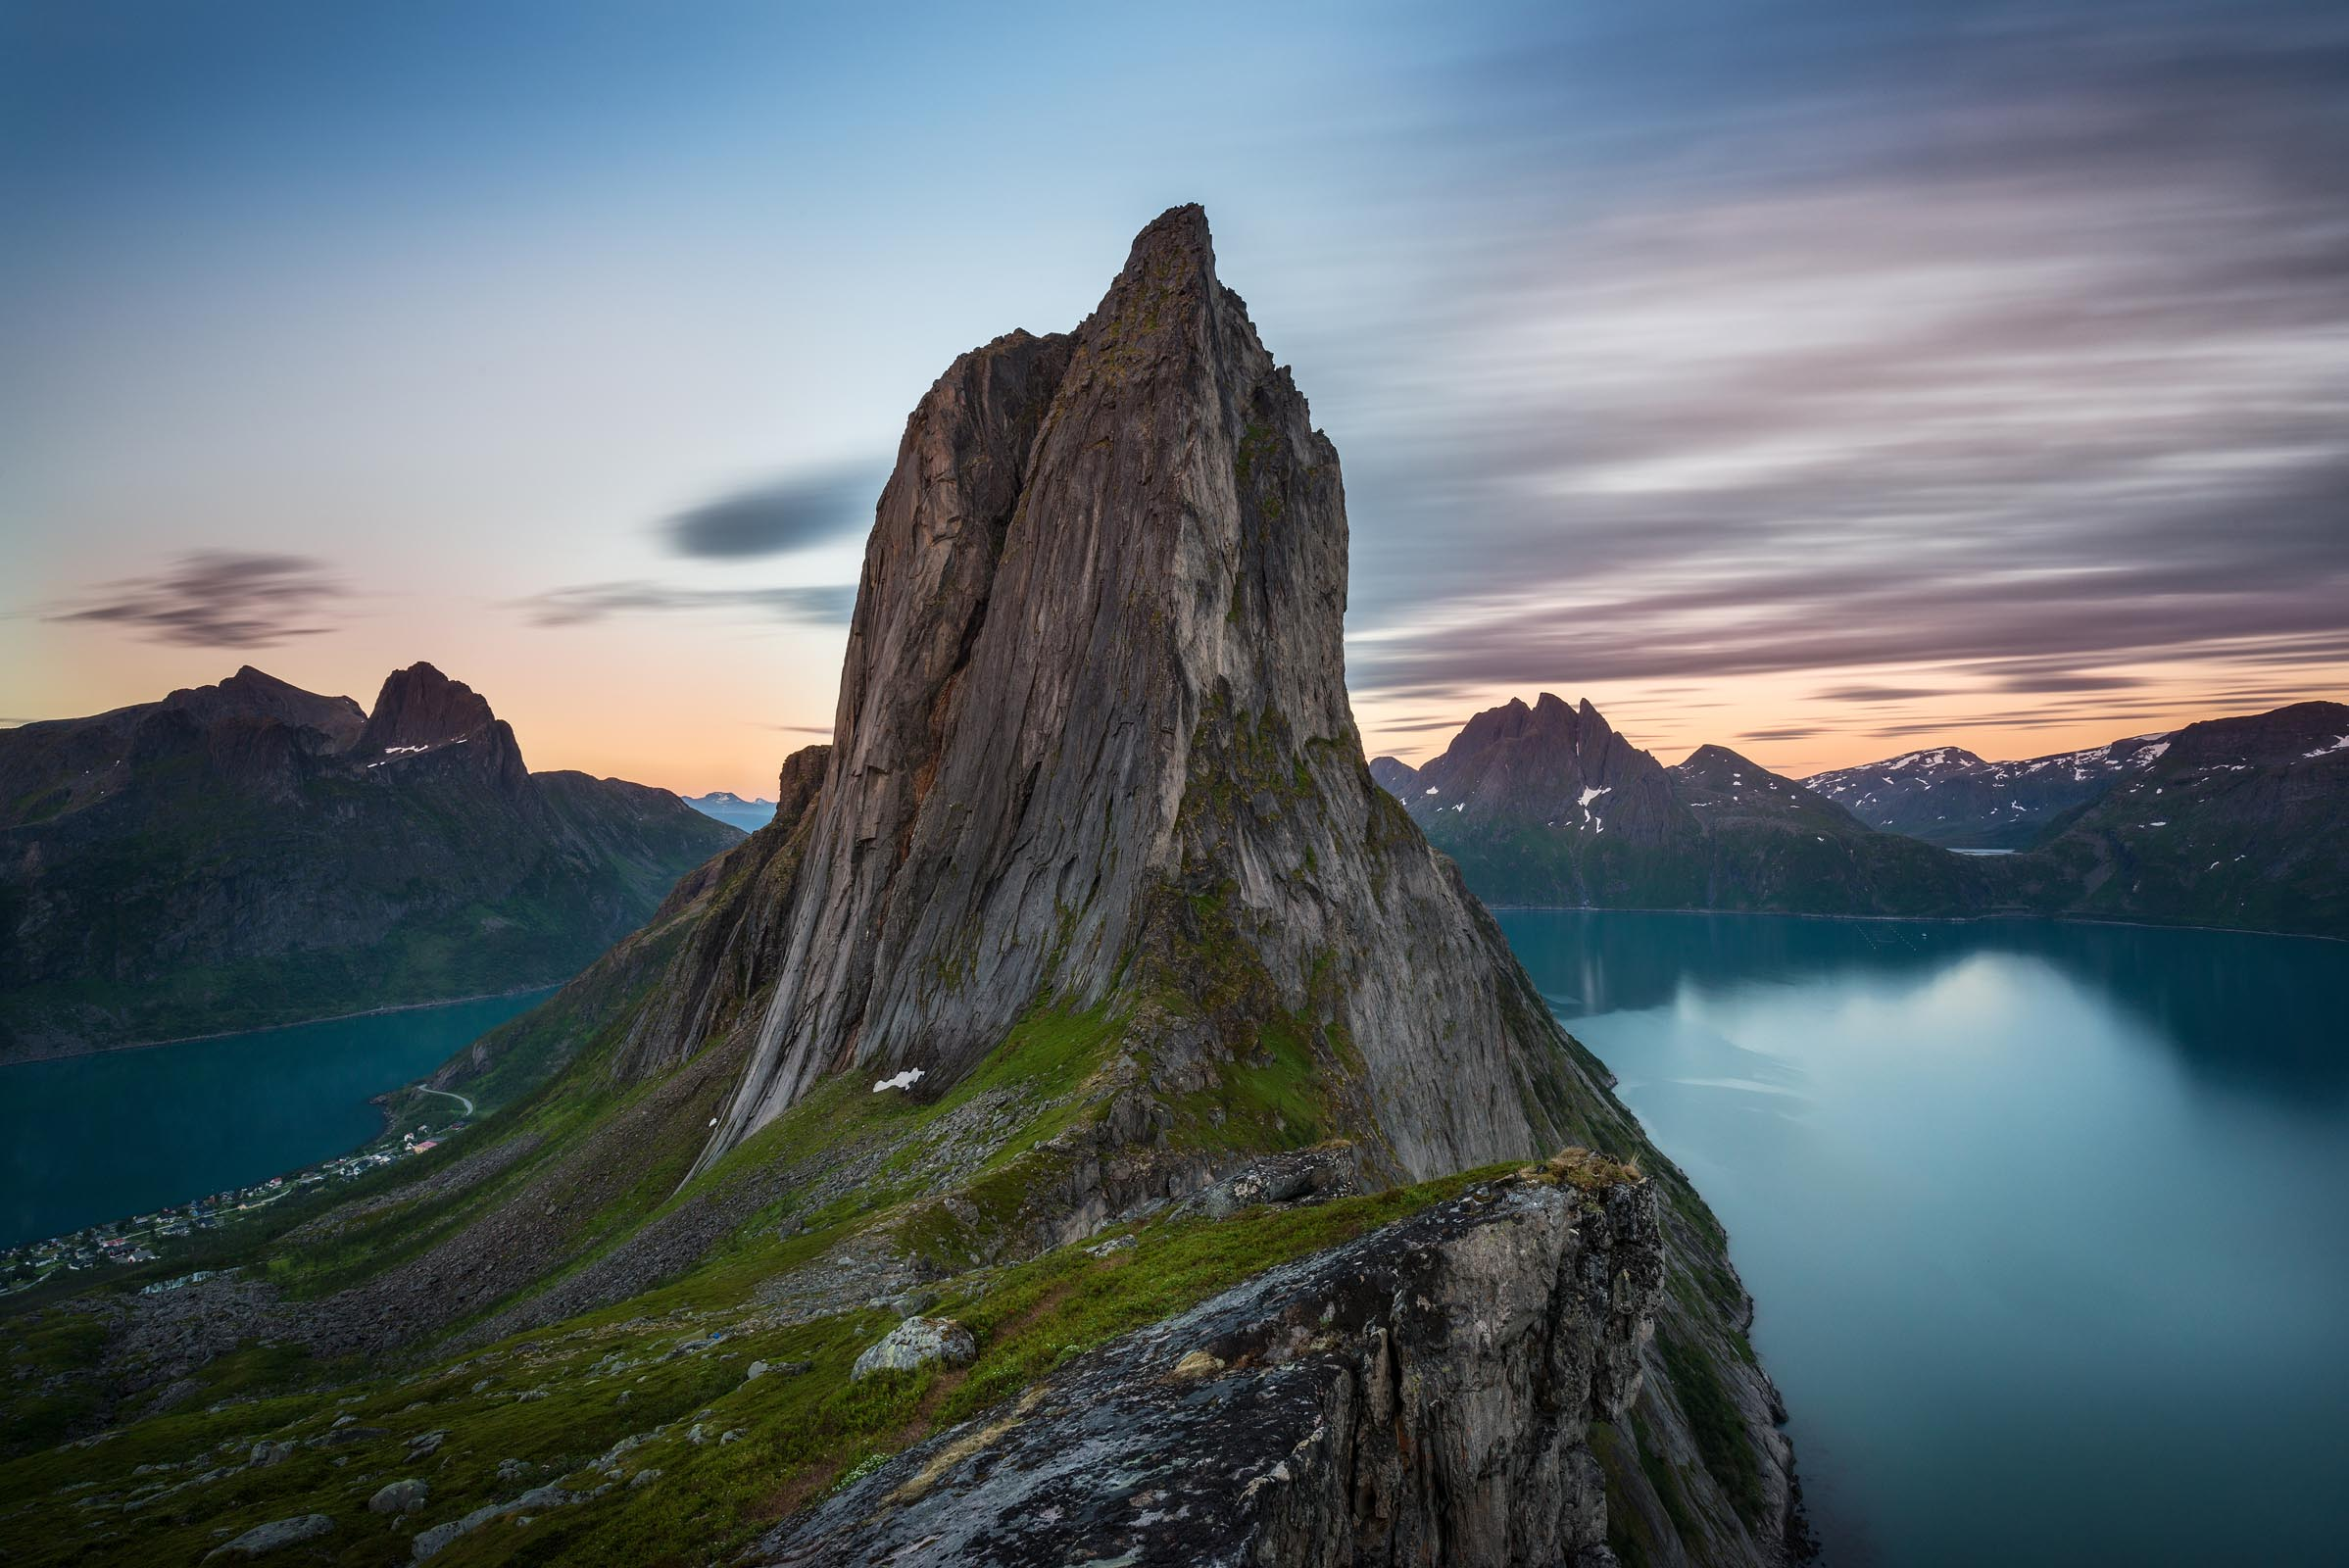 Photograph of Segla Mountain in Senja, Norway by Brent Goldman Photography